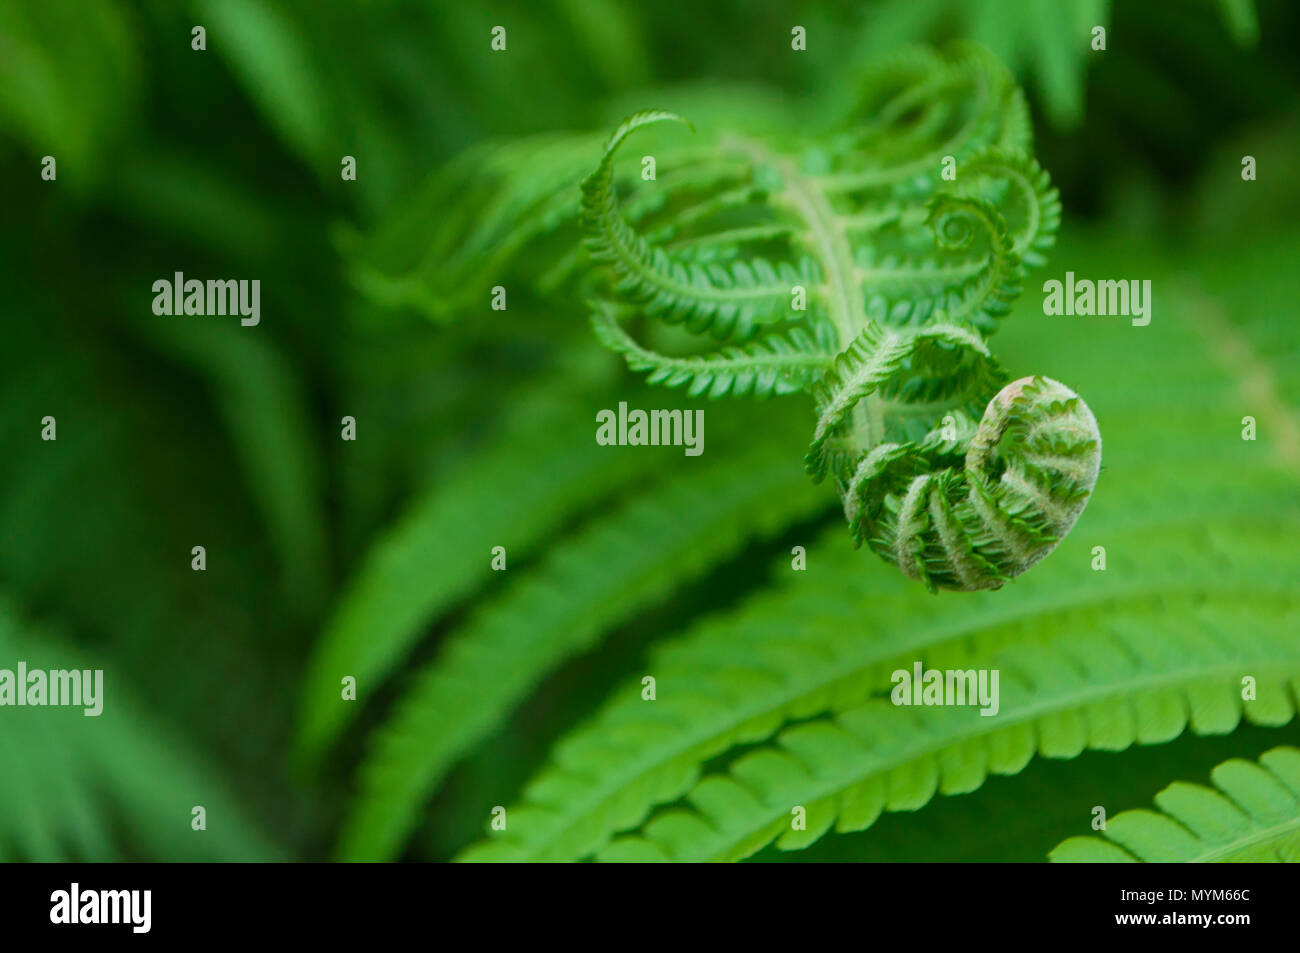 Beautiful bright green fern leaves. Textured floral background. Stock Photo